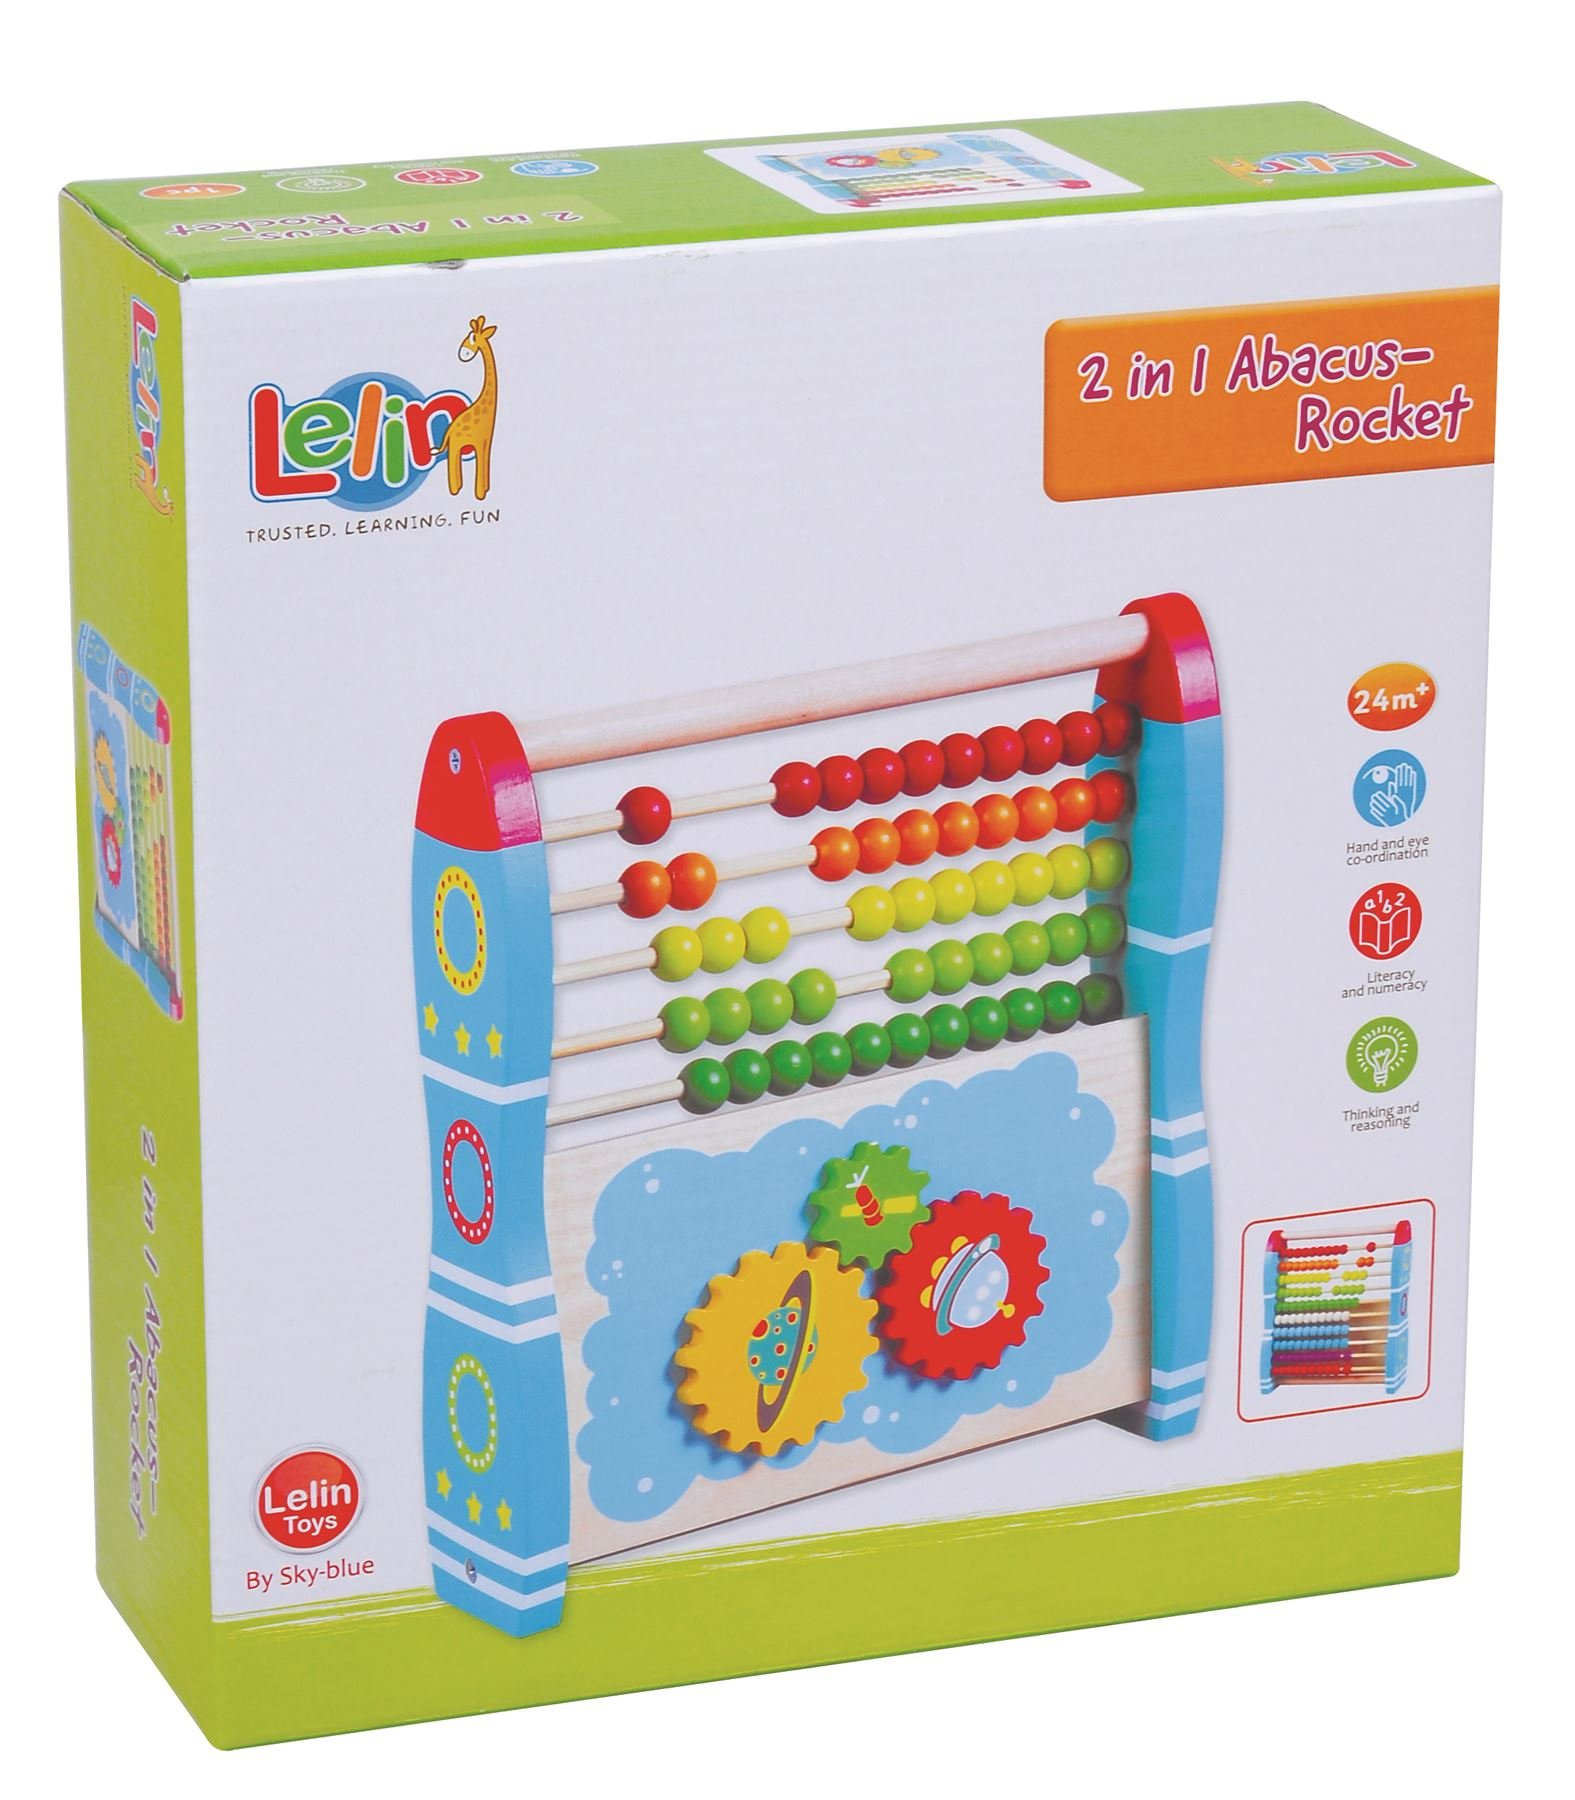 Lelin Wooden Toys 2 In 1 Abacus Rocket Learning Number For Childrens Kids 24 M+